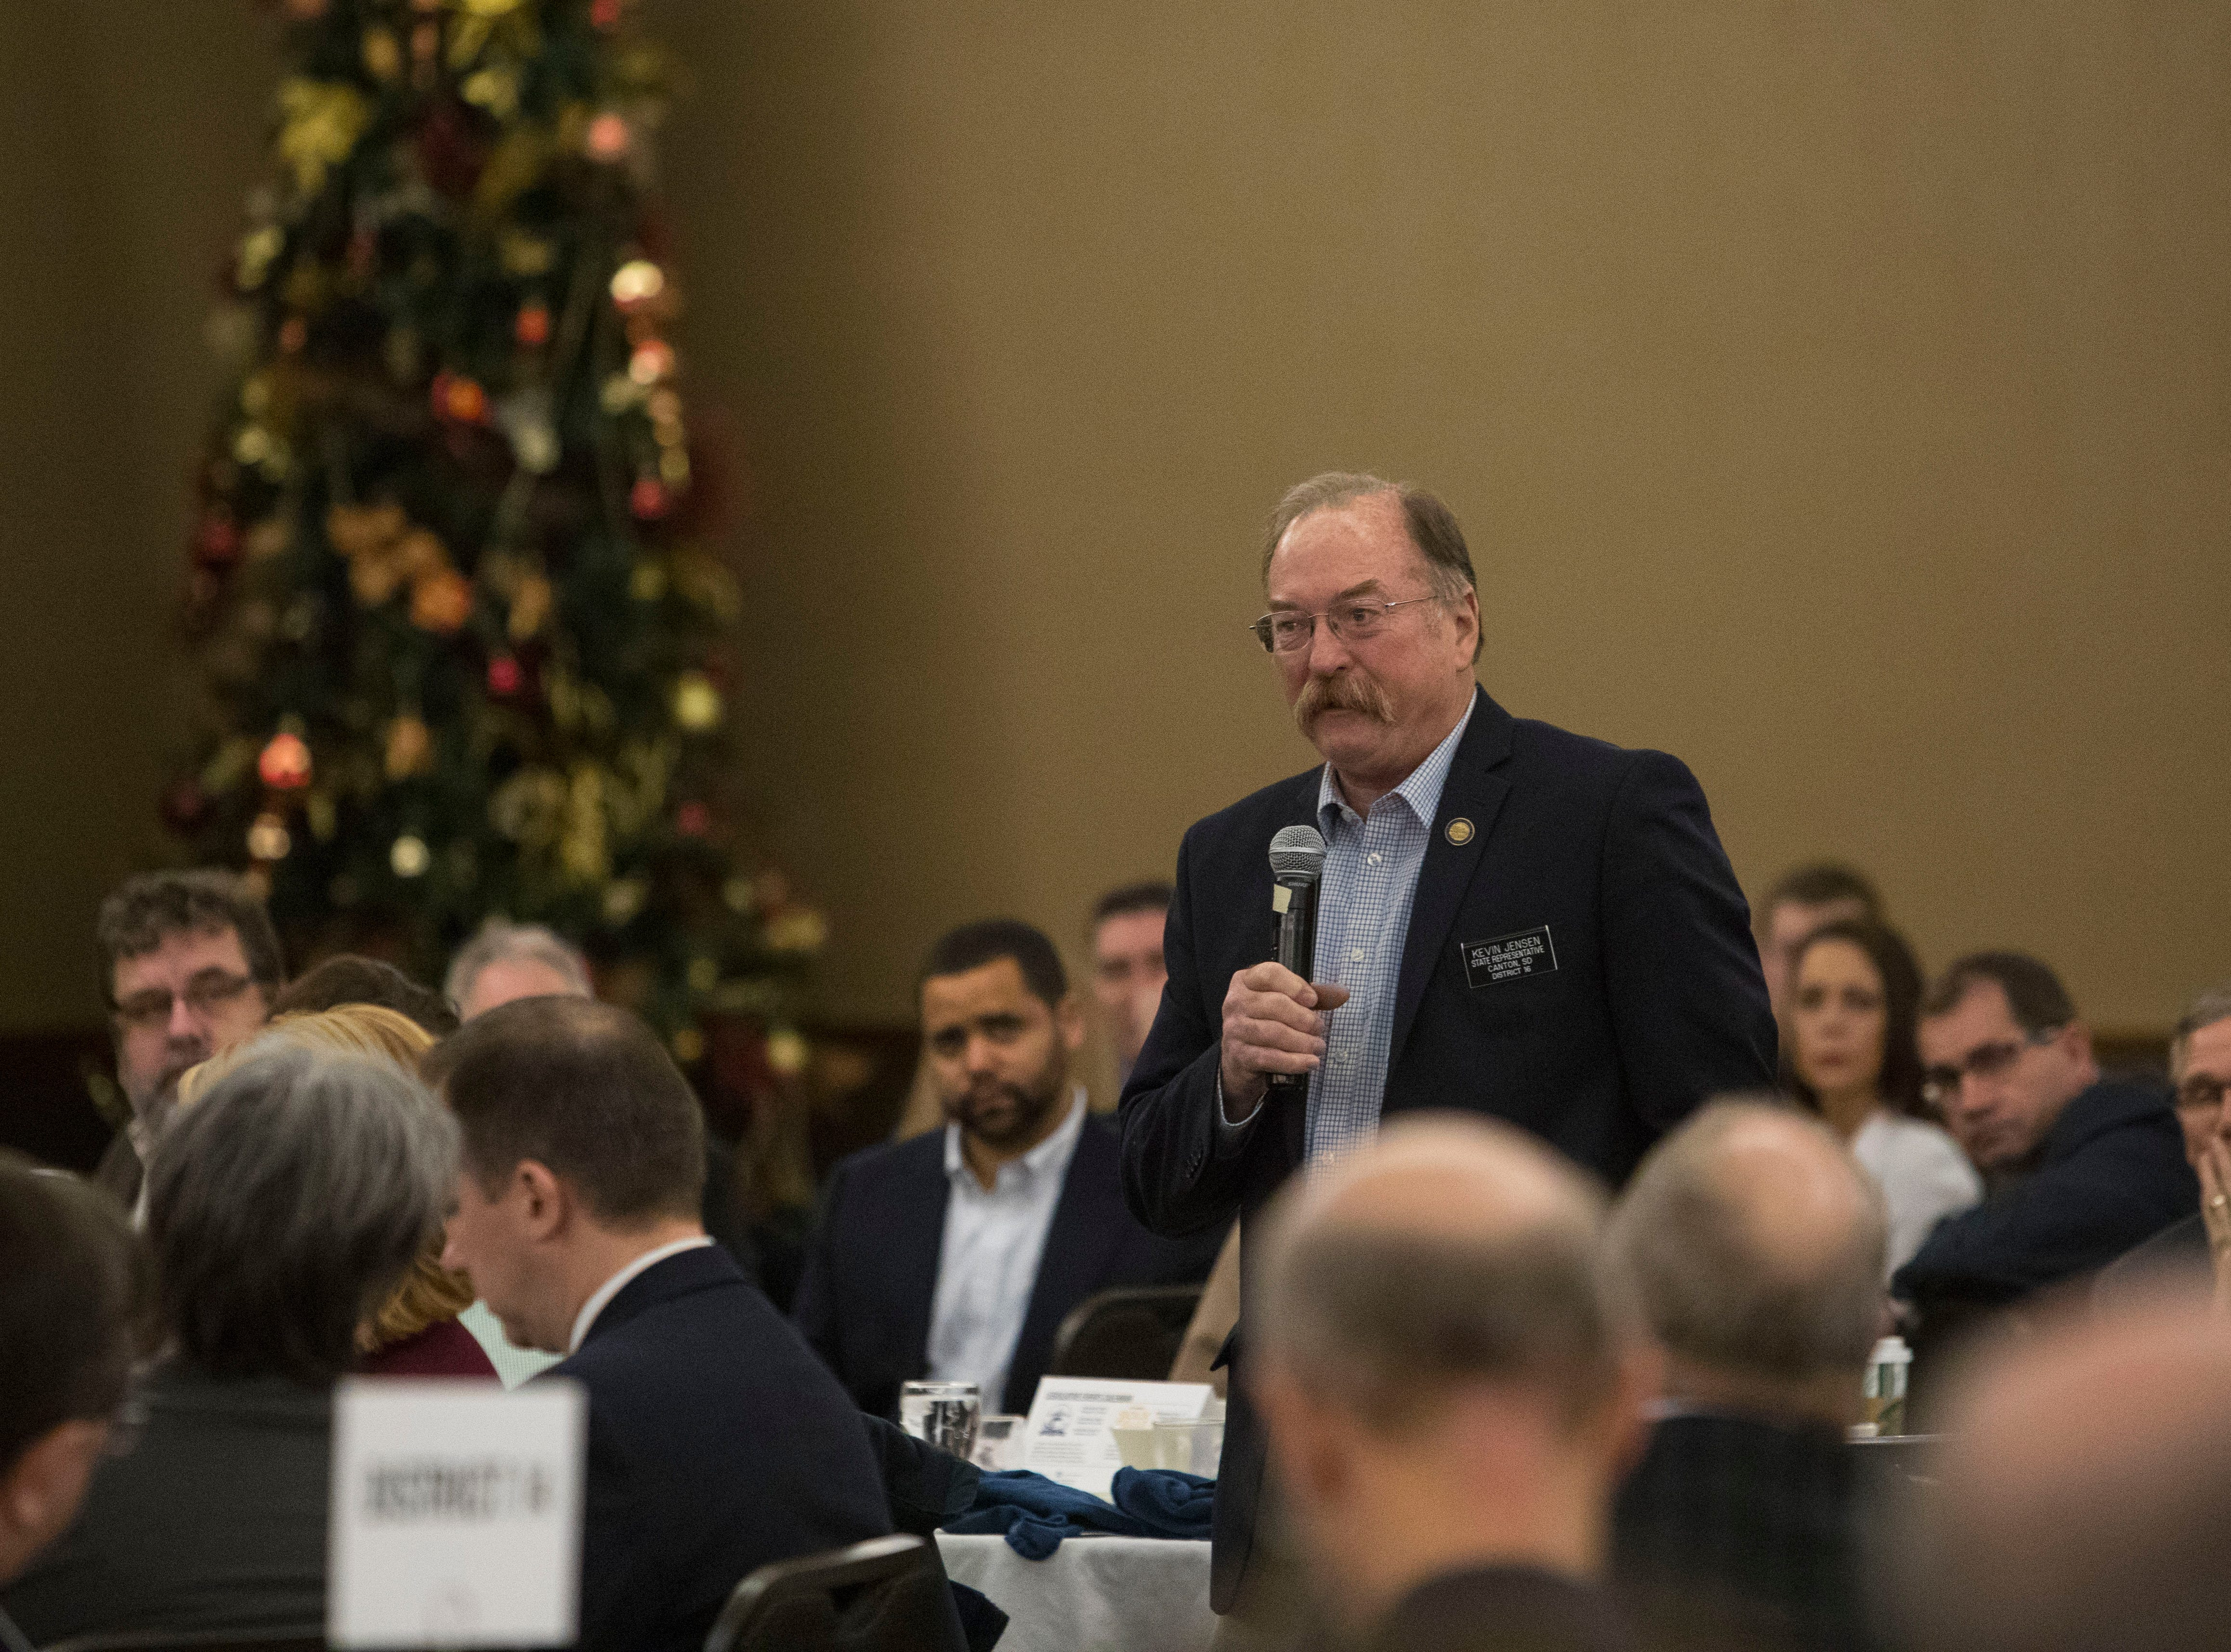 Rep. Kevin D. Jensen, District 16, speaks at the Chamber of Commerce legislative breakfast, Thursday, Jan. 3, 2019 at the Best Western Plus Ramkota Hotel in Sioux Falls, S.D.